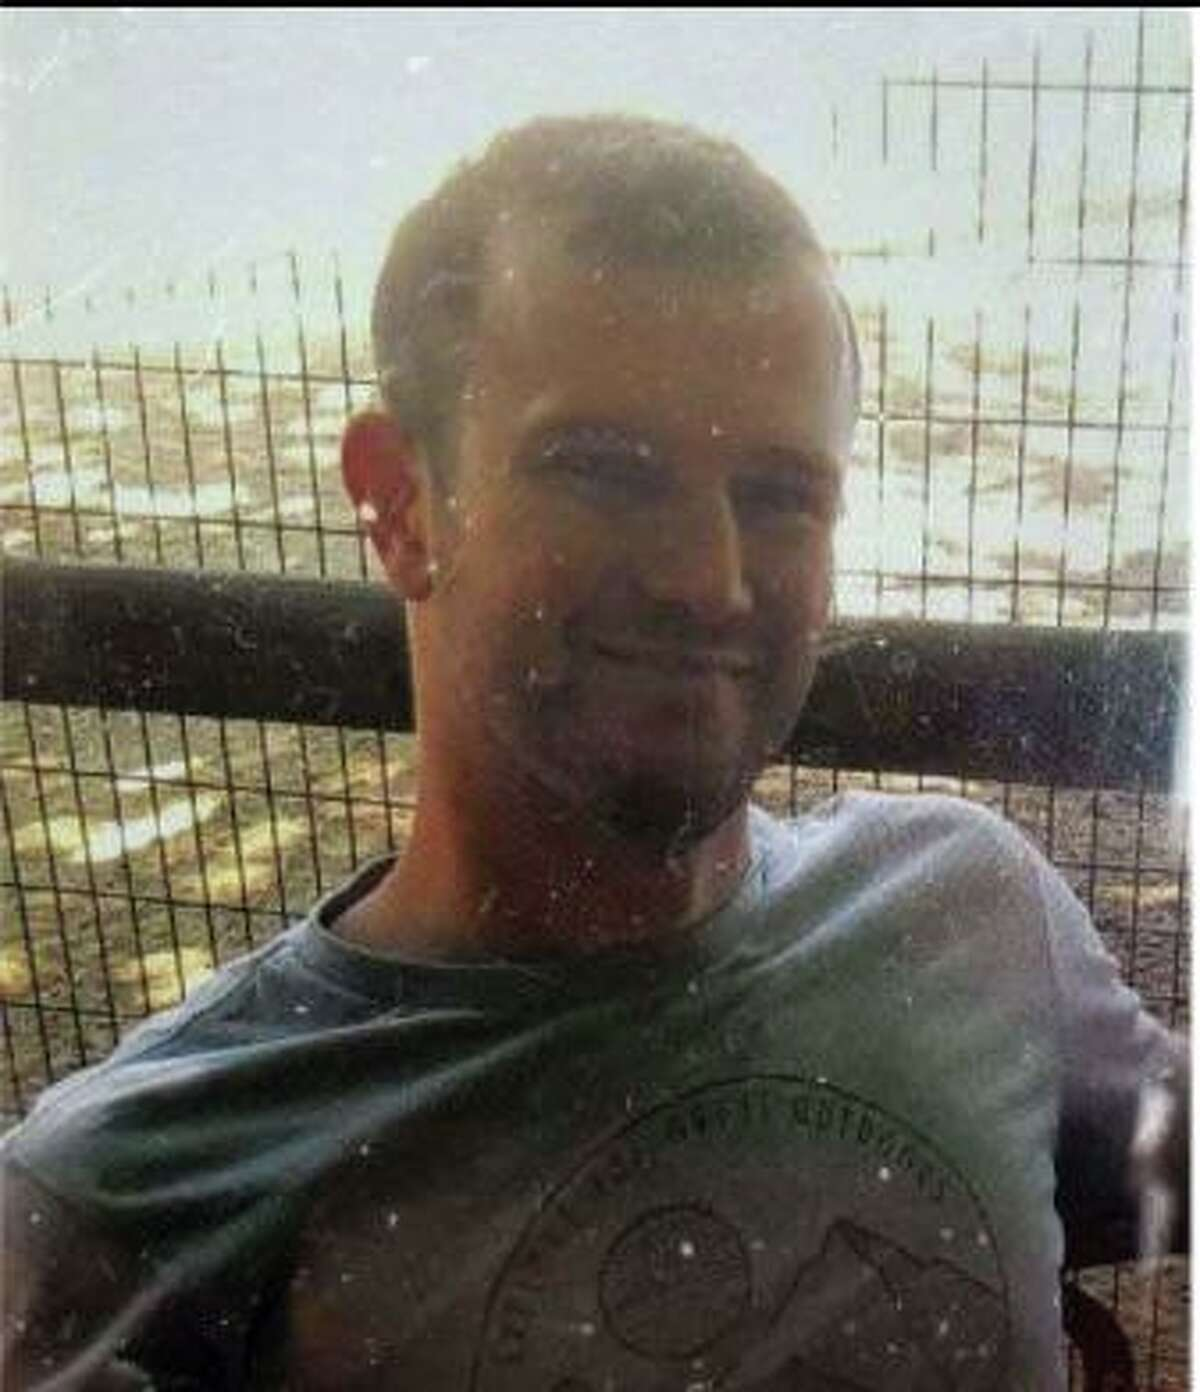 Joel Thomazin, 31, of Denair (Stanislaus County), was reported missing Sept. 11, 2021, after failing to return from a solo hike in Yosemite National Park.